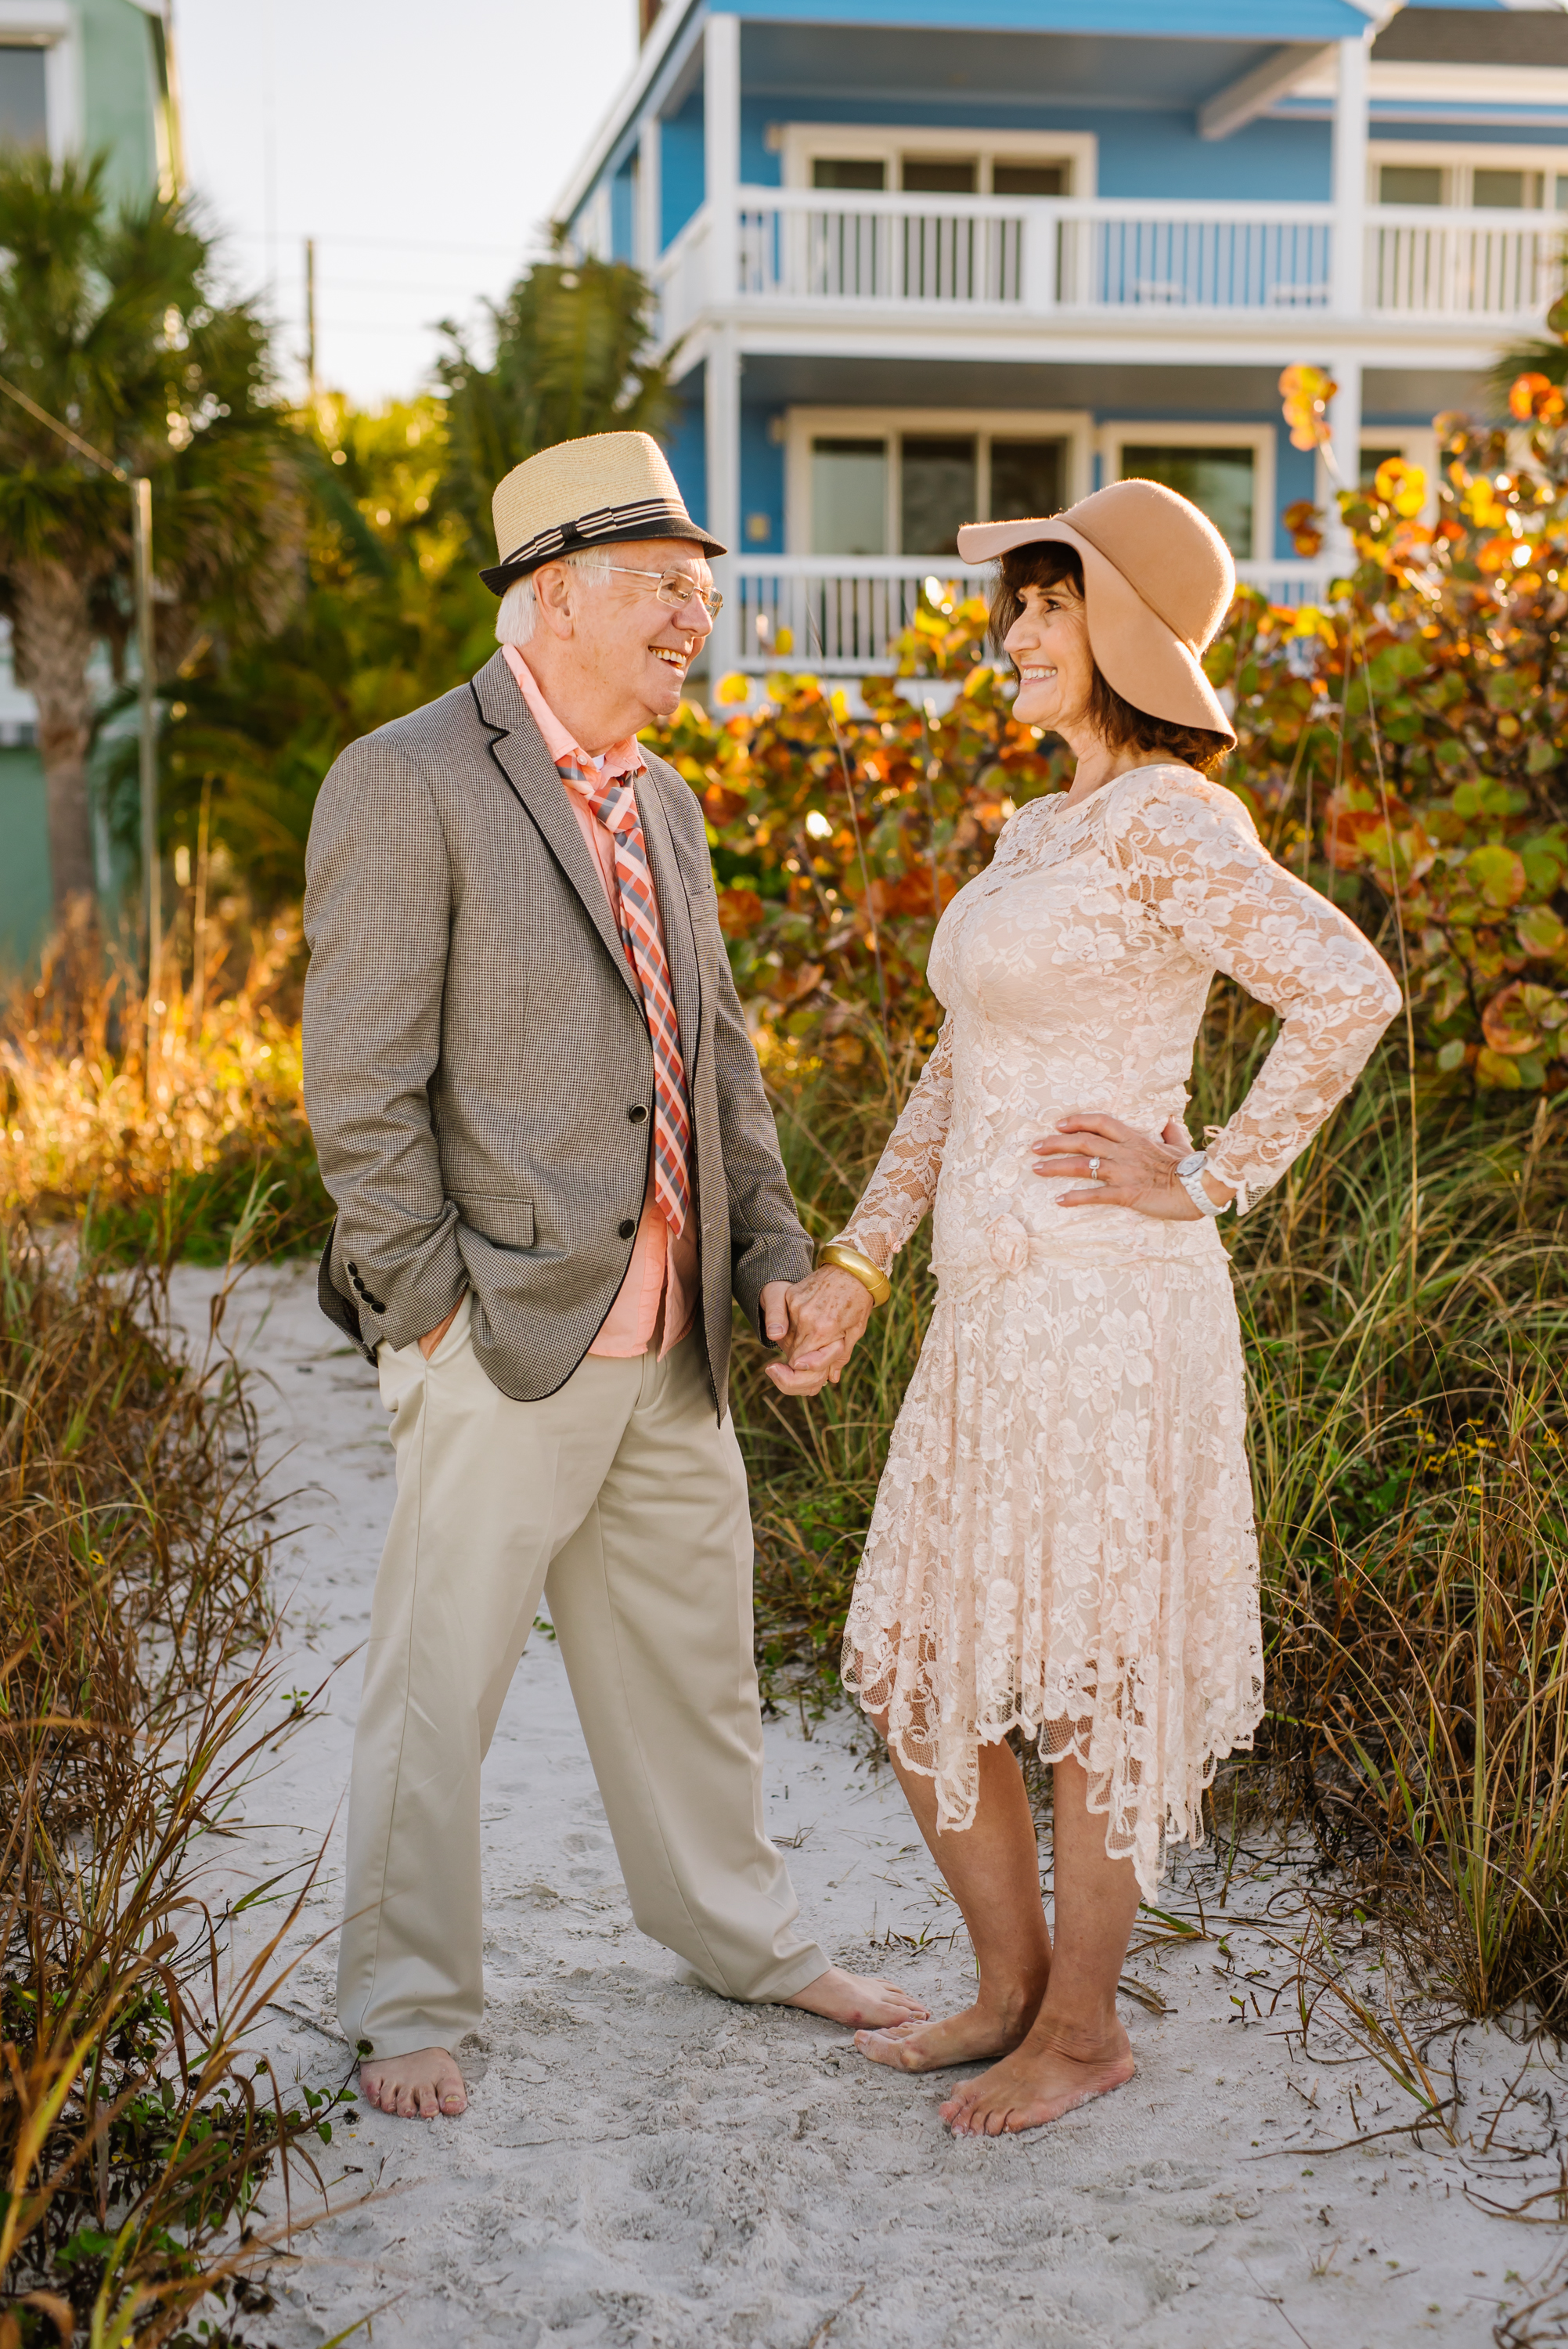 tampa-engagement-photographer-beach-sunrise-senior-couple-old-elderly-happy-candid-young-vintage-classy-florida